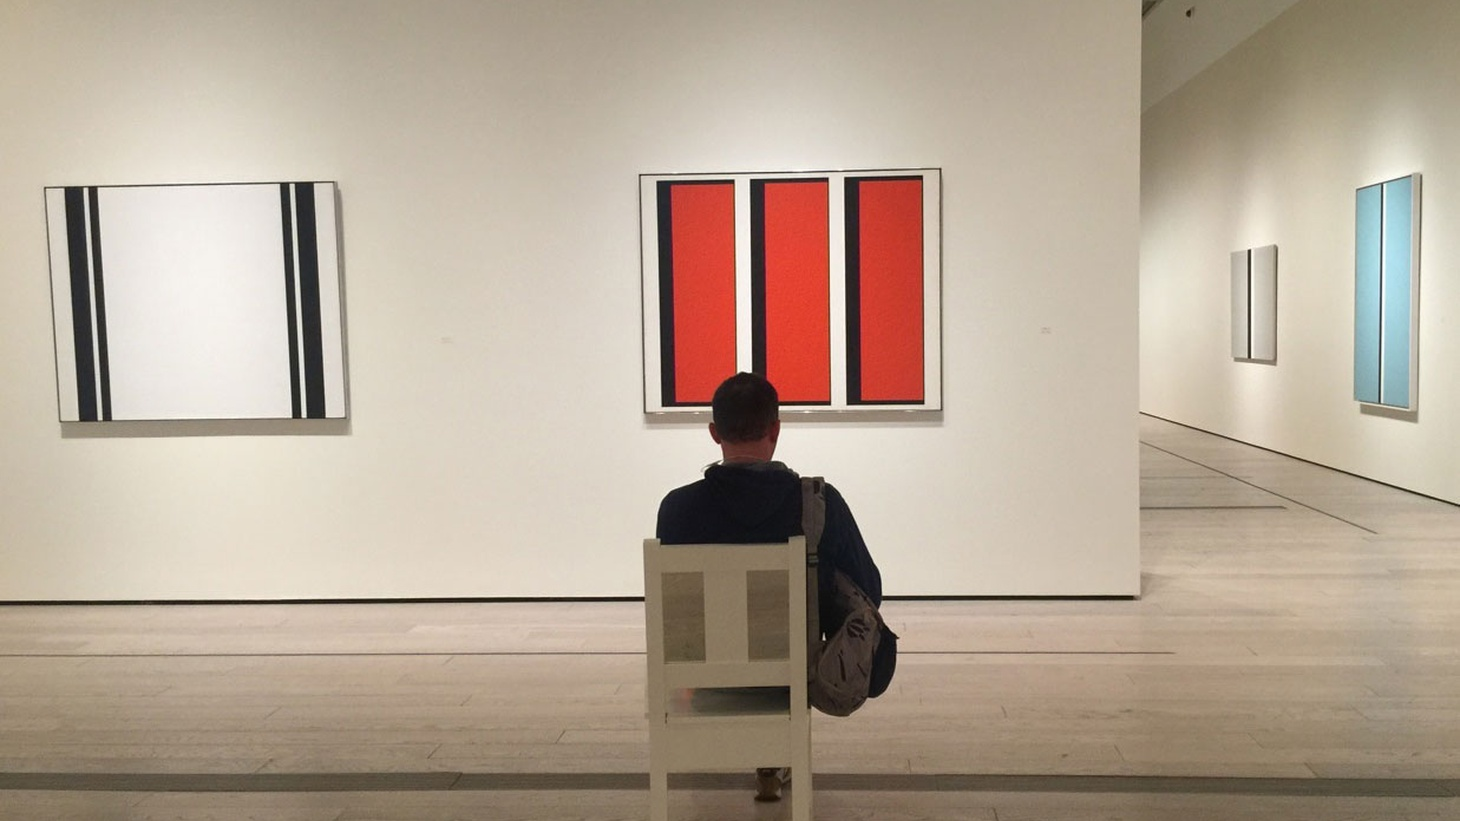 Edward Goldman talks about the exceptional retrospective exhibition of geometric abstract paintings by John McLaughlin at LACMA.